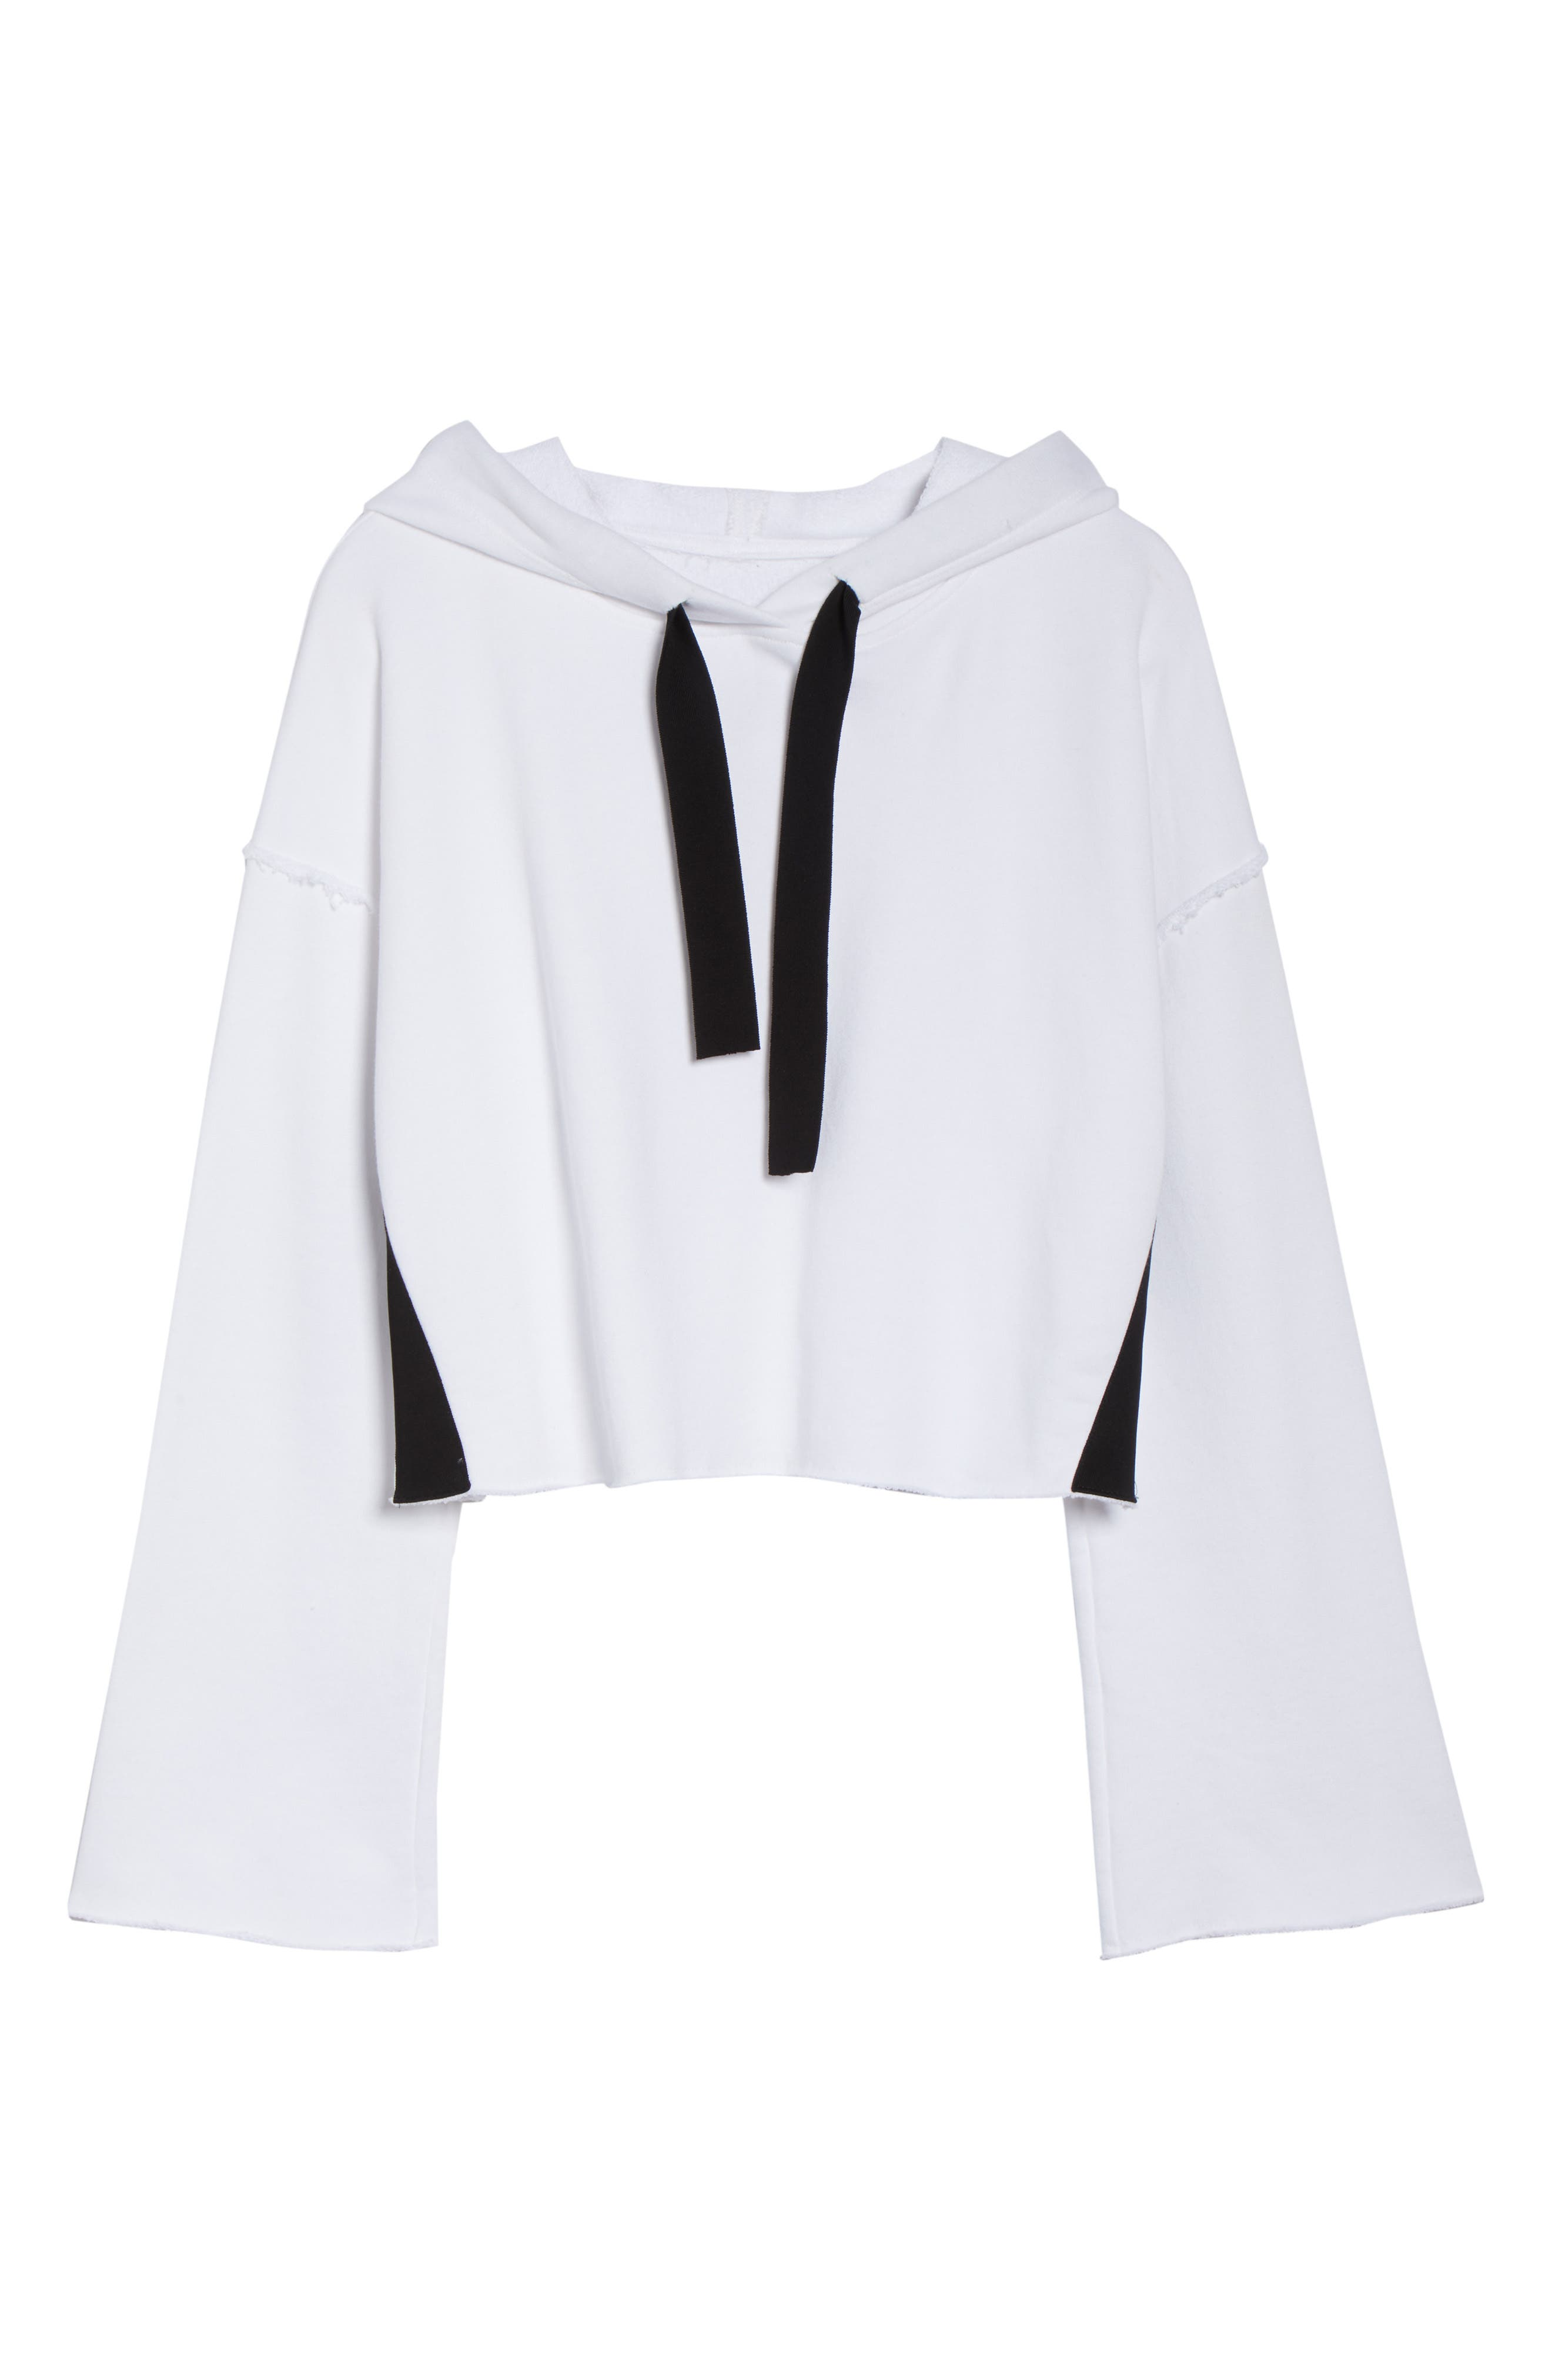 Stance Bell Sleeve Crop Hoodie,                             Alternate thumbnail 7, color,                             White